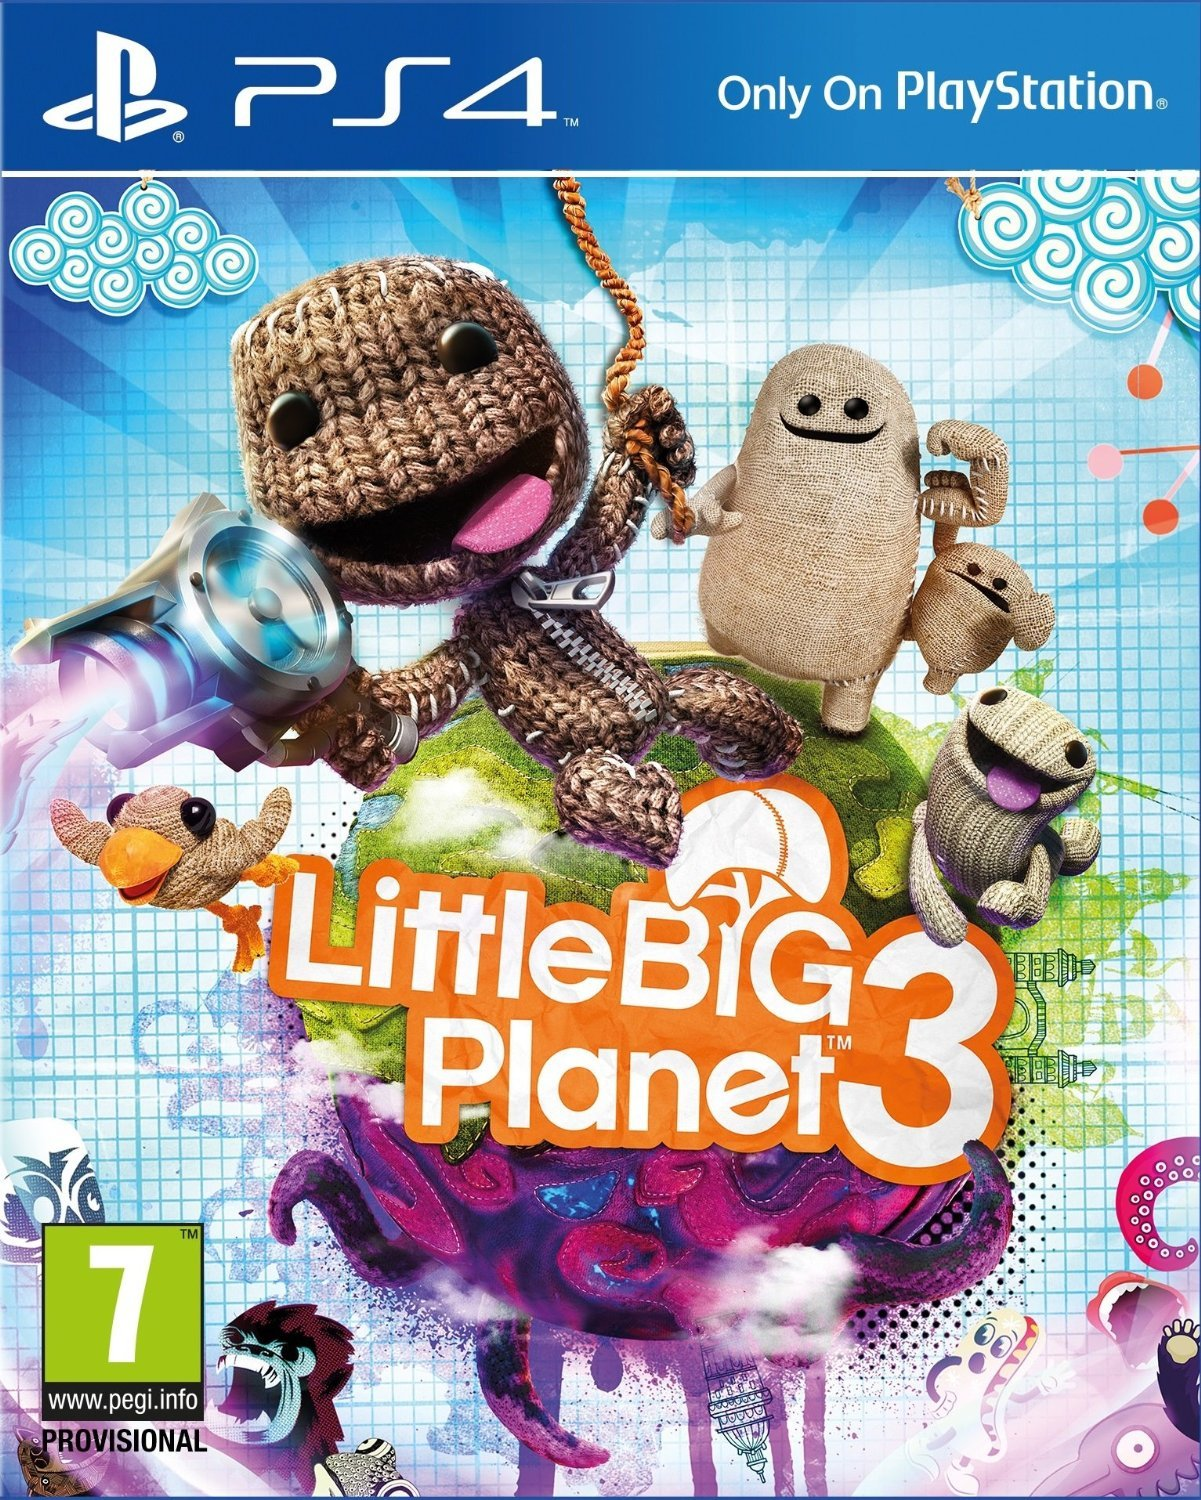 littlebigplanet 3 sur playstation 4. Black Bedroom Furniture Sets. Home Design Ideas